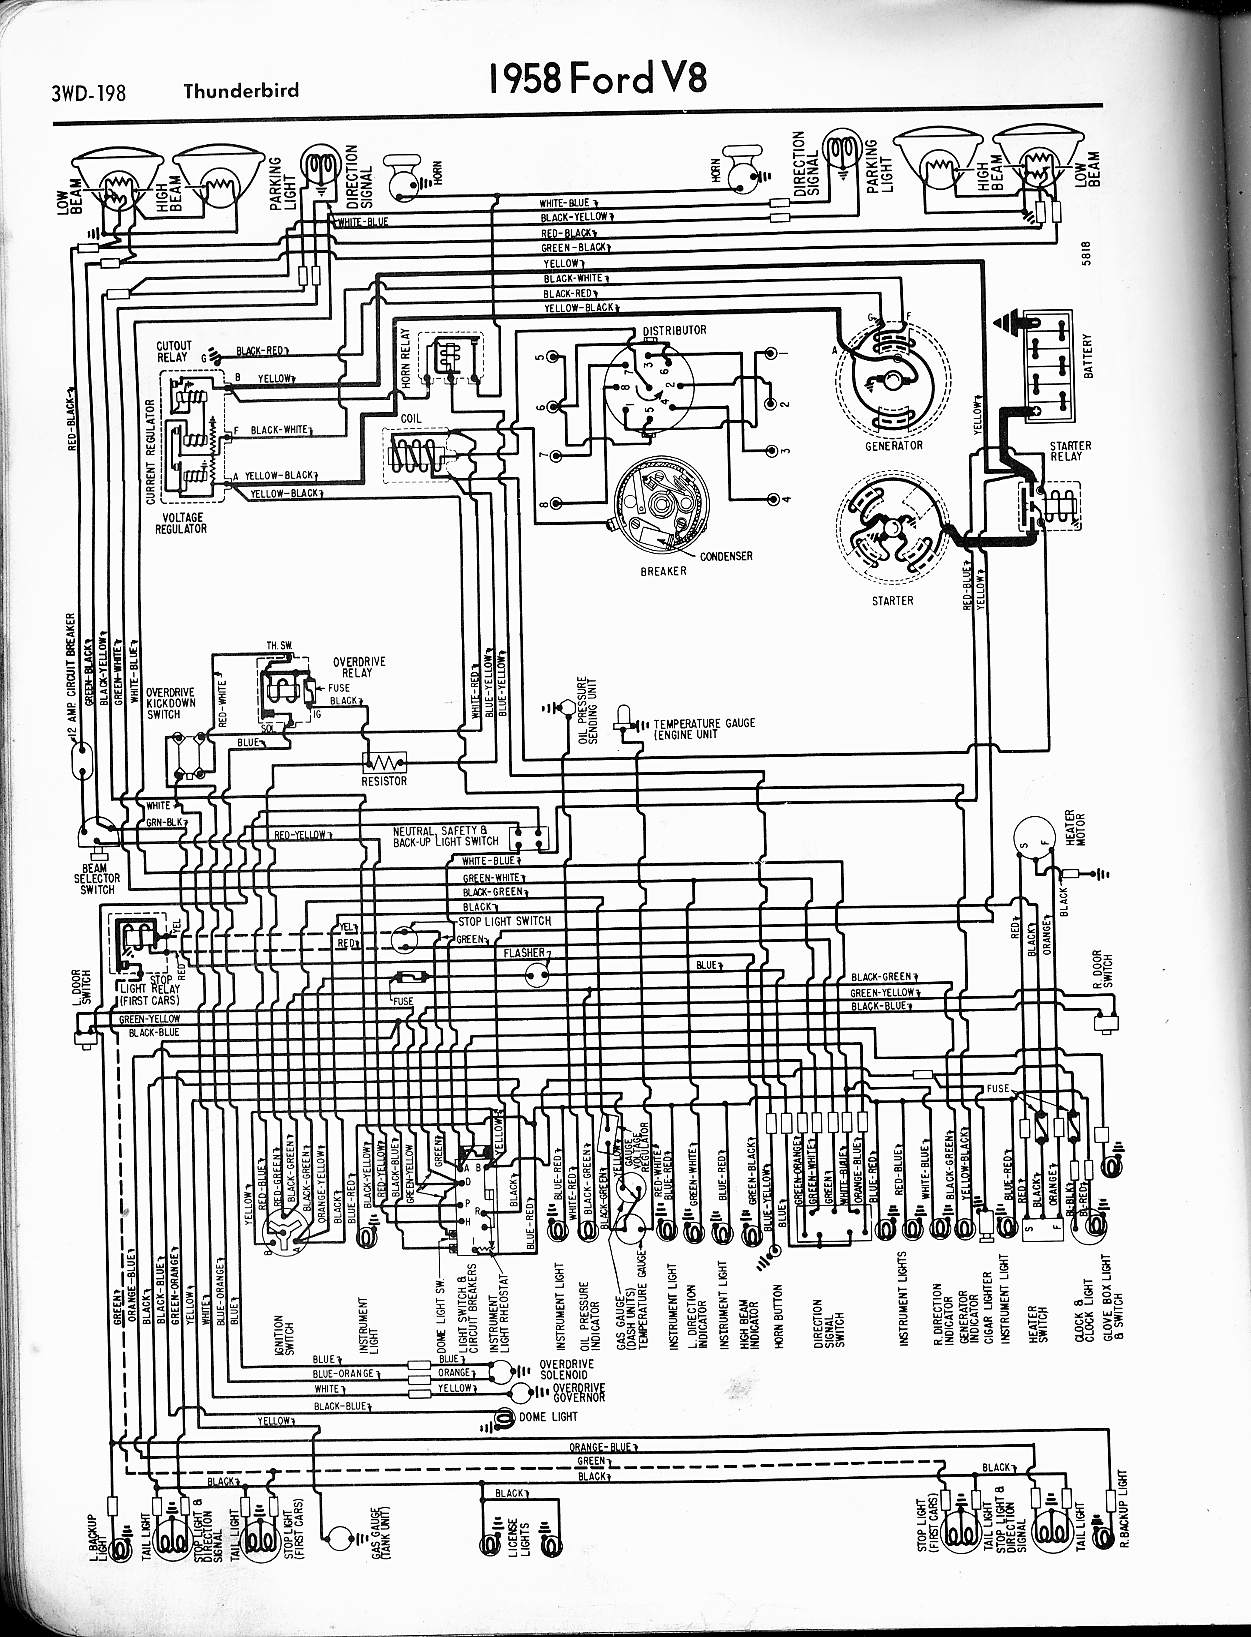 57 Ford Wiring Manual E Books Chevy Diagrams For Cars Passenger Car 1951 Diagram All 65 Diagrams57 4